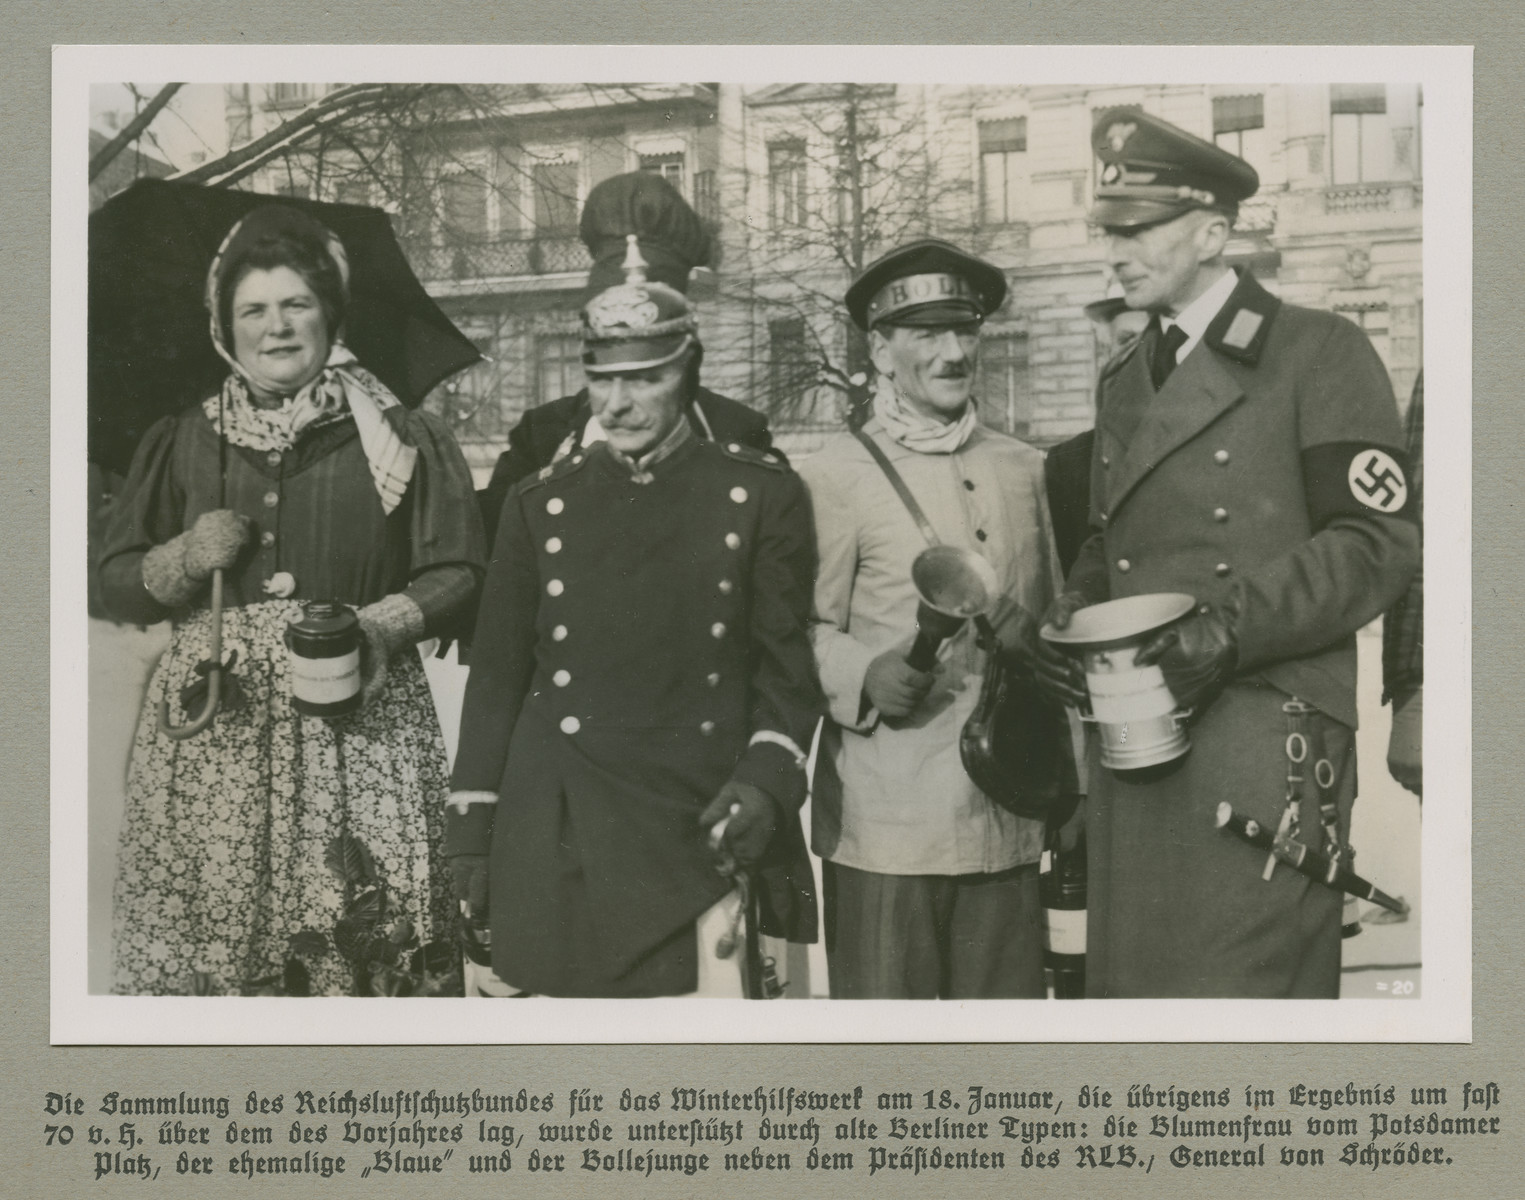 Group portrait of men and women dressed as typical Berlin character types.  Original caption reads: Gathering of the Reichluftschutzbundes (State Air Protection Corps) for the Winterhilfswerke (Winter Relief Drive) on January 18, which incidentally has increased by nearly nearly 70 percent  over the previous year, was supported by old Berlin types: the Flower Lady of Potsdamer Platz, the Former Blue Policeman and the Milk Delivery Boy stand next to General Von Schröder, the president of the RLB.